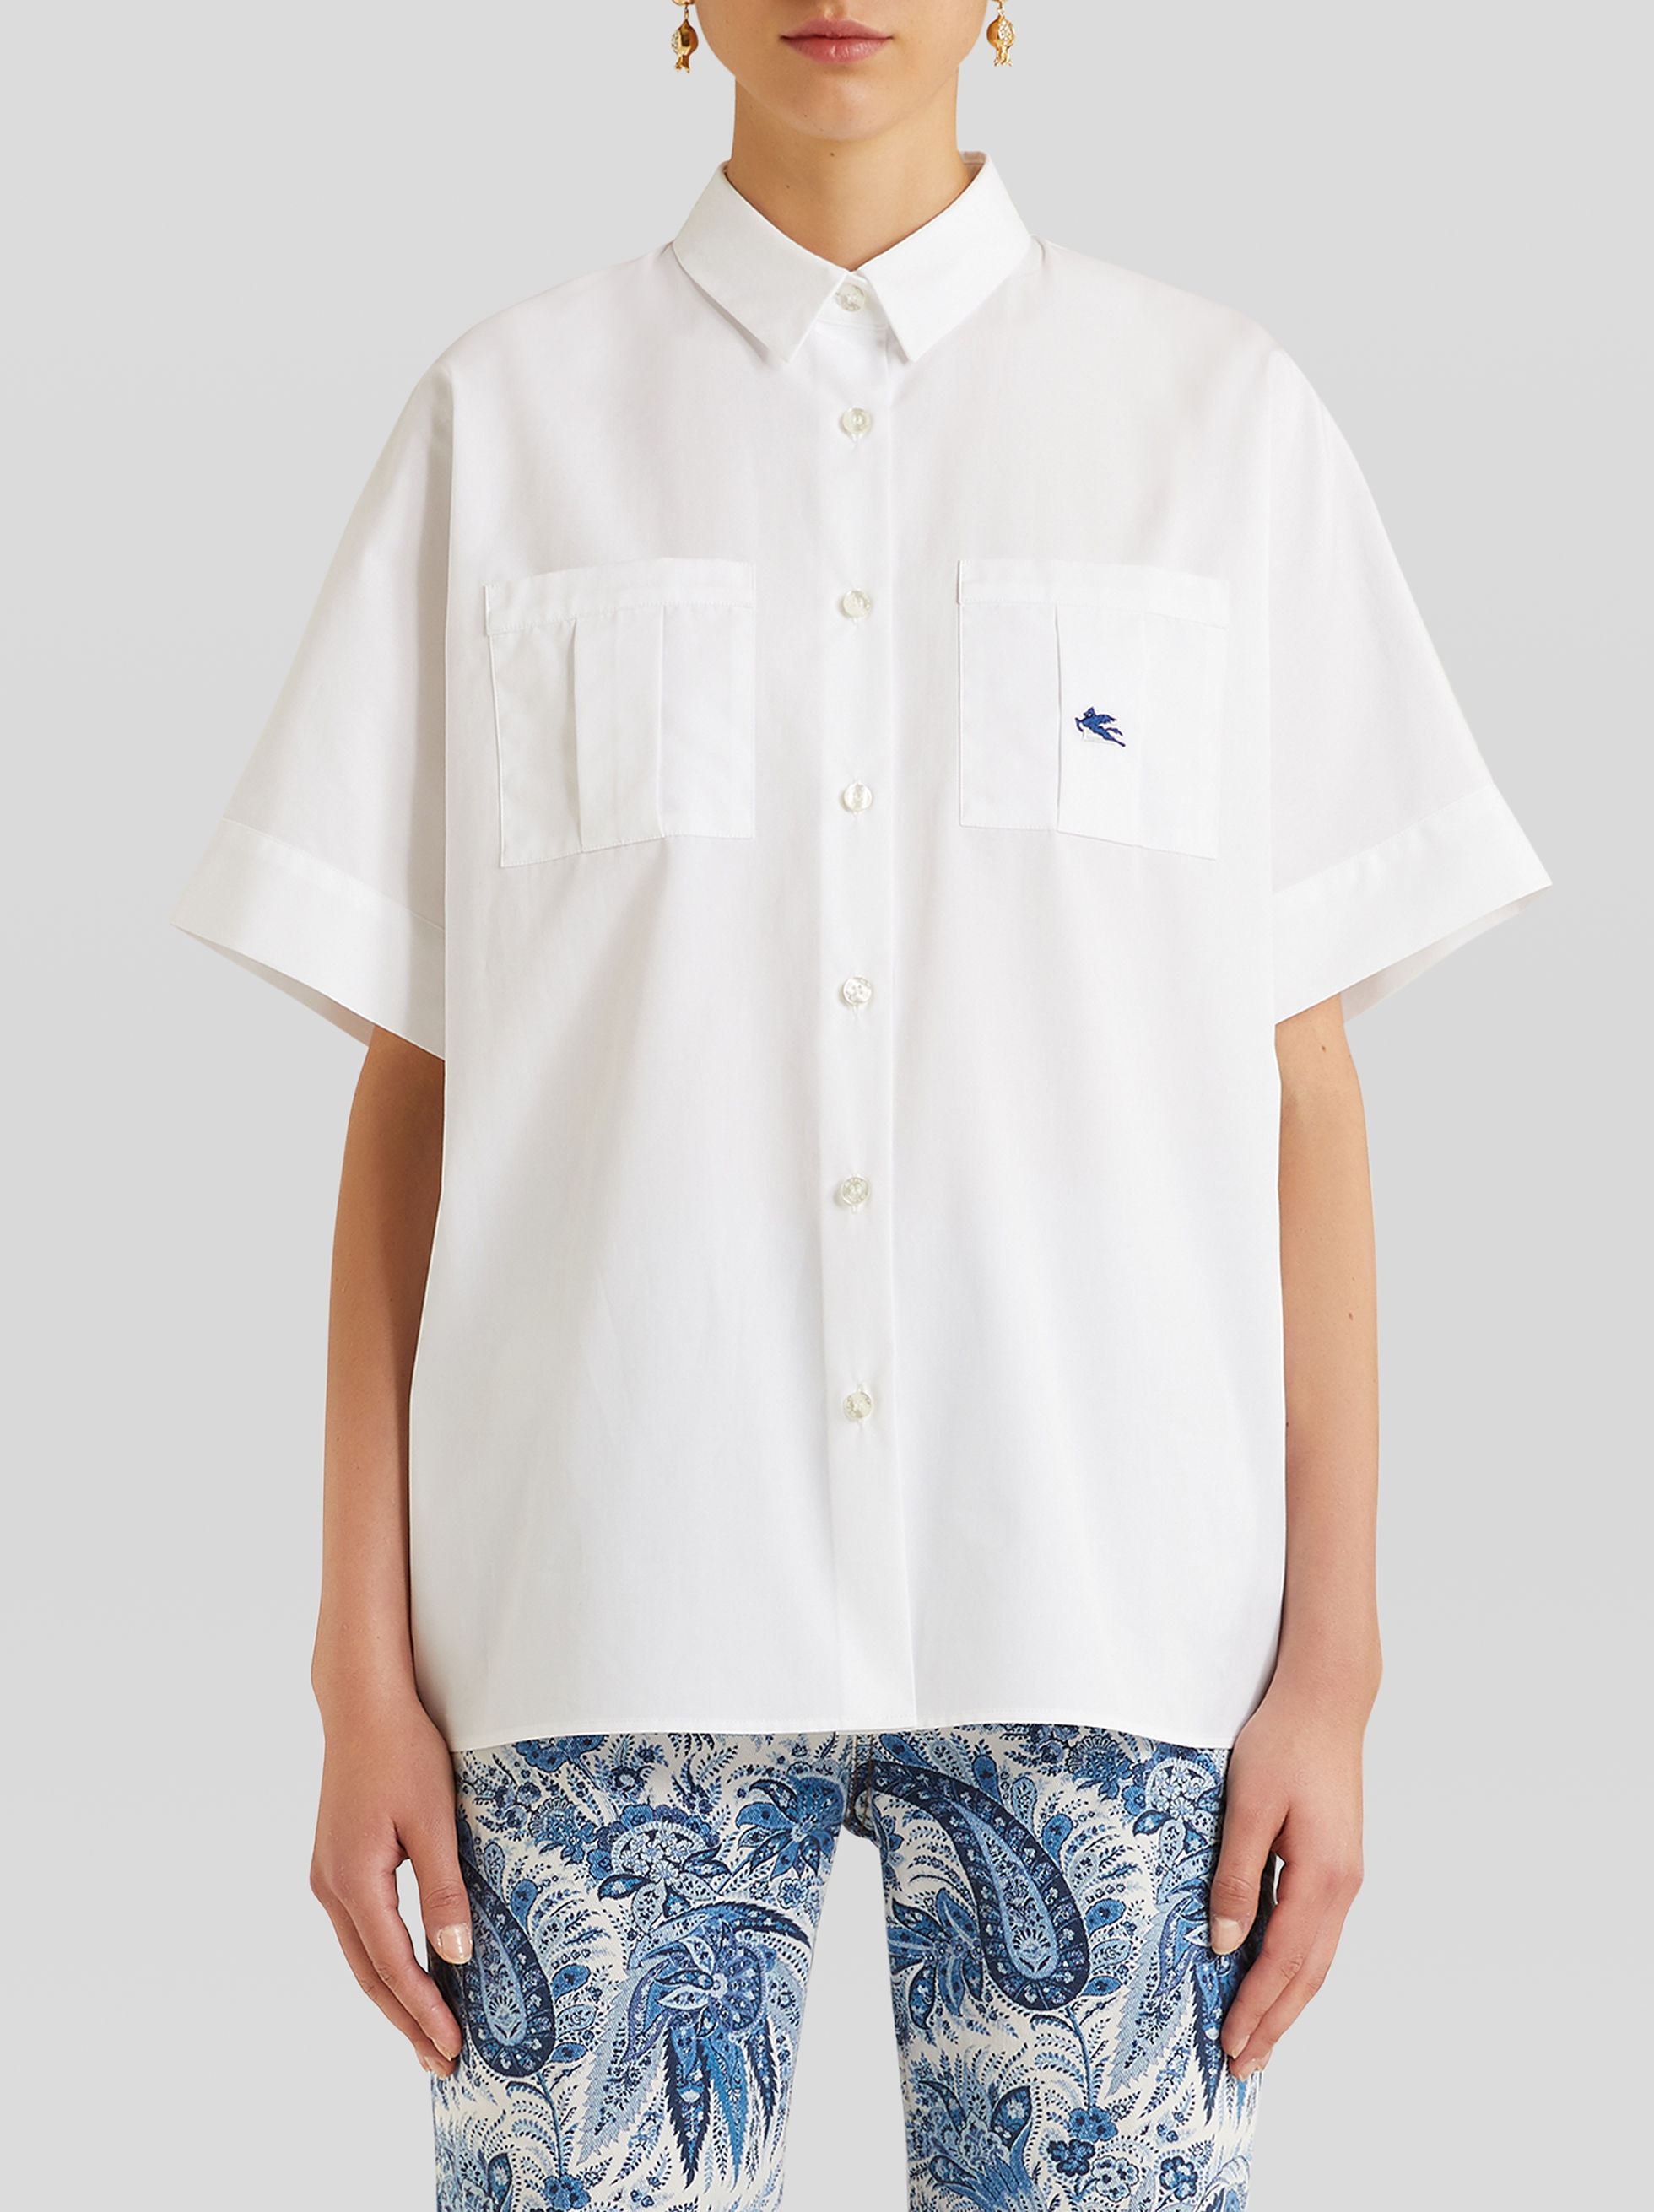 SHORT-SLEEVED SHIRT WITH PEGASO